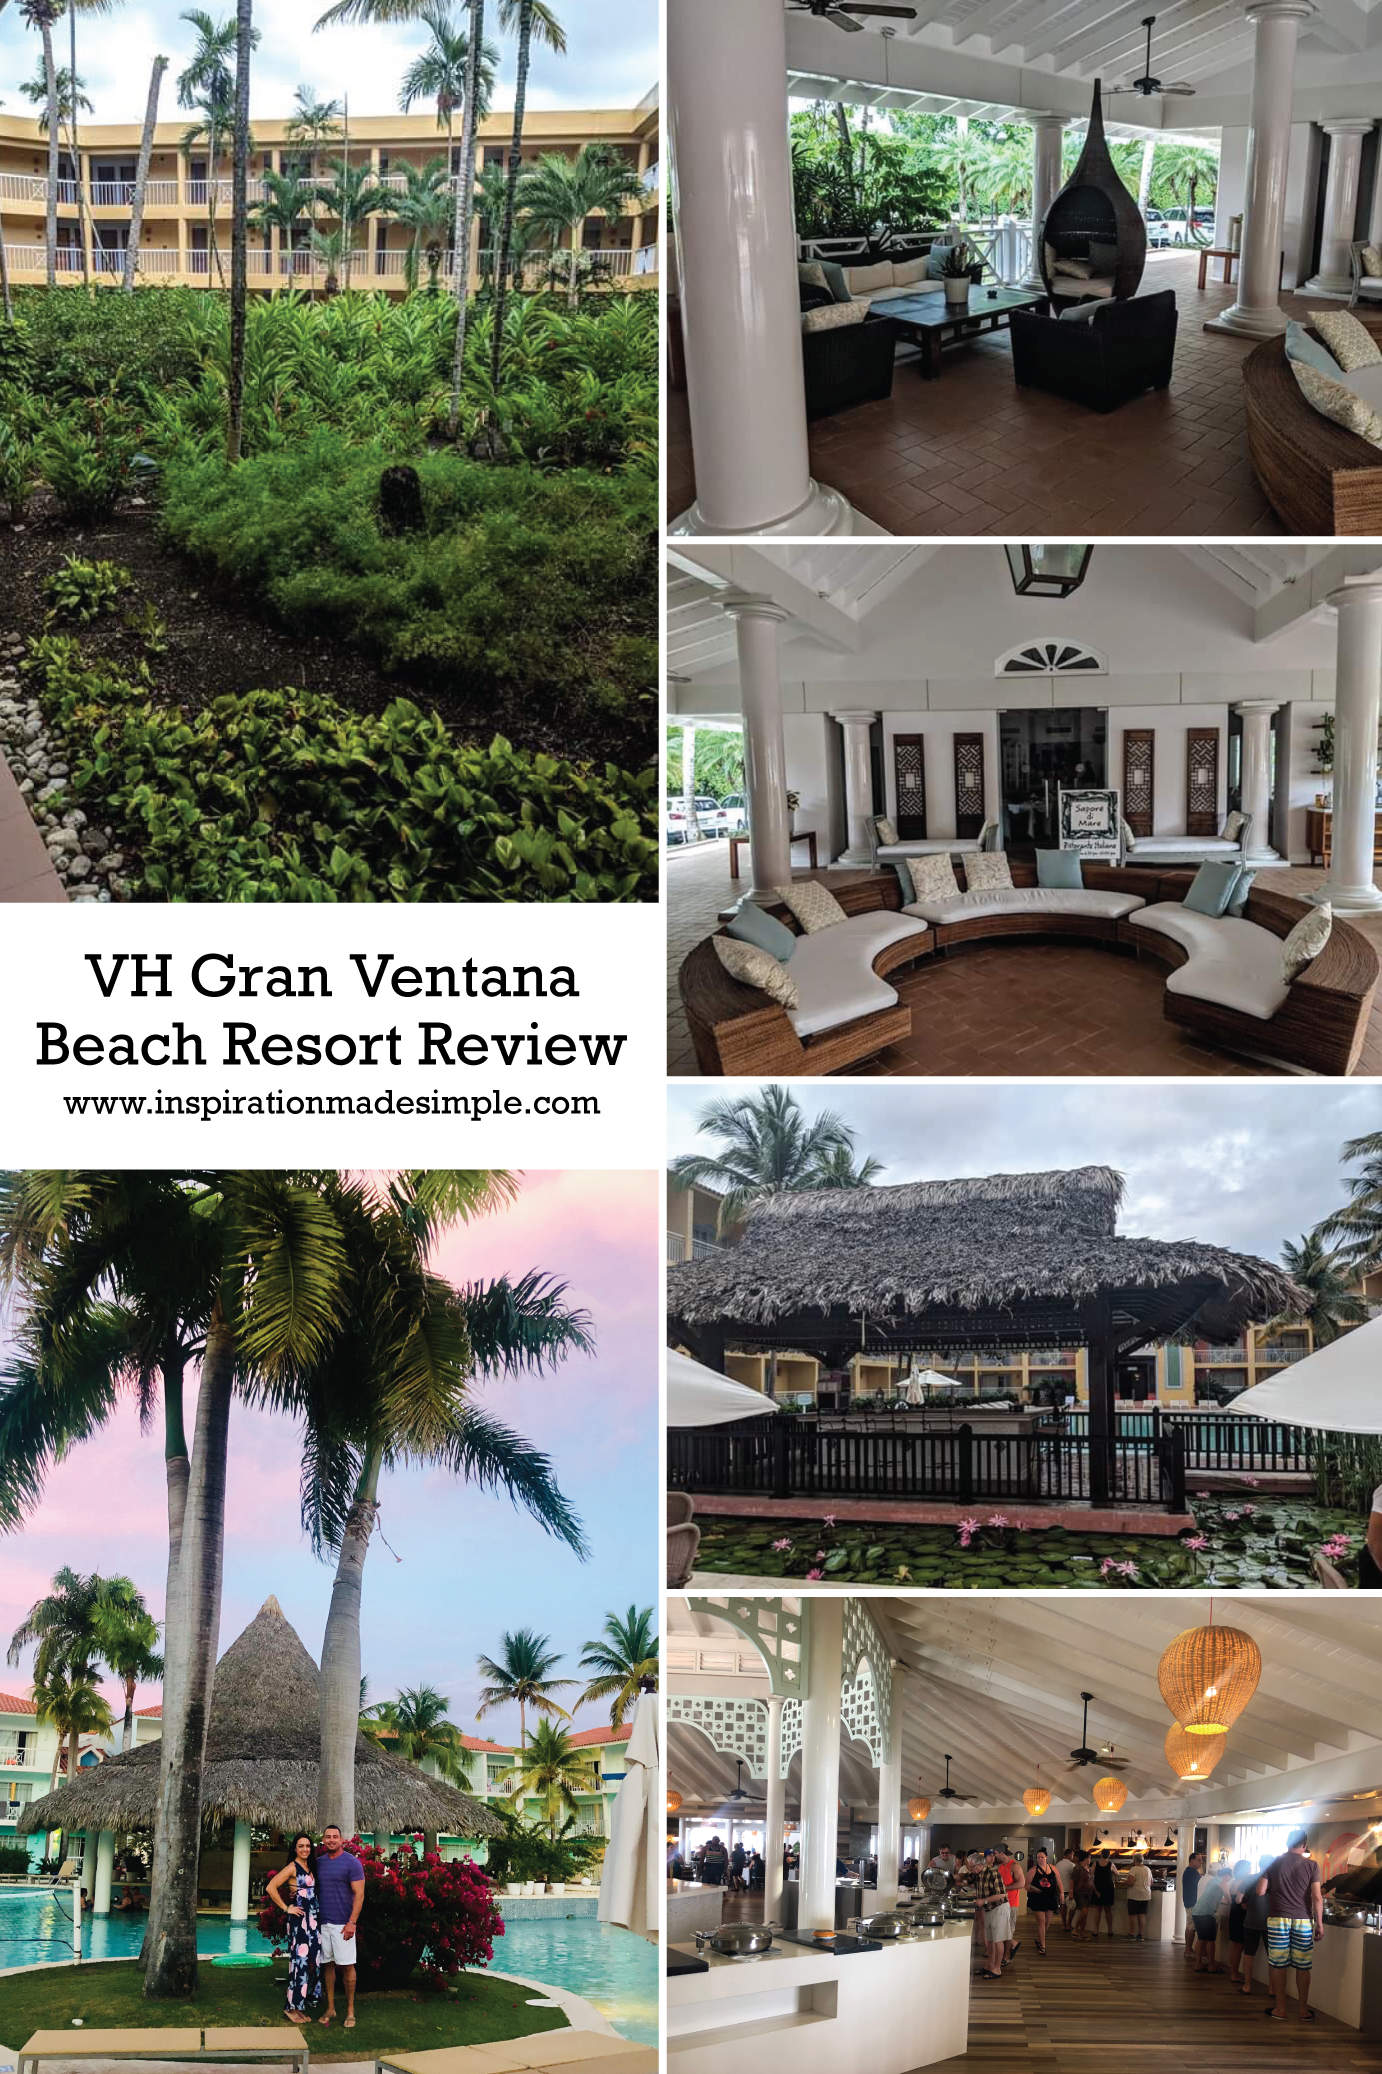 VH Gran Ventana Beach Resort in Dominican Republic